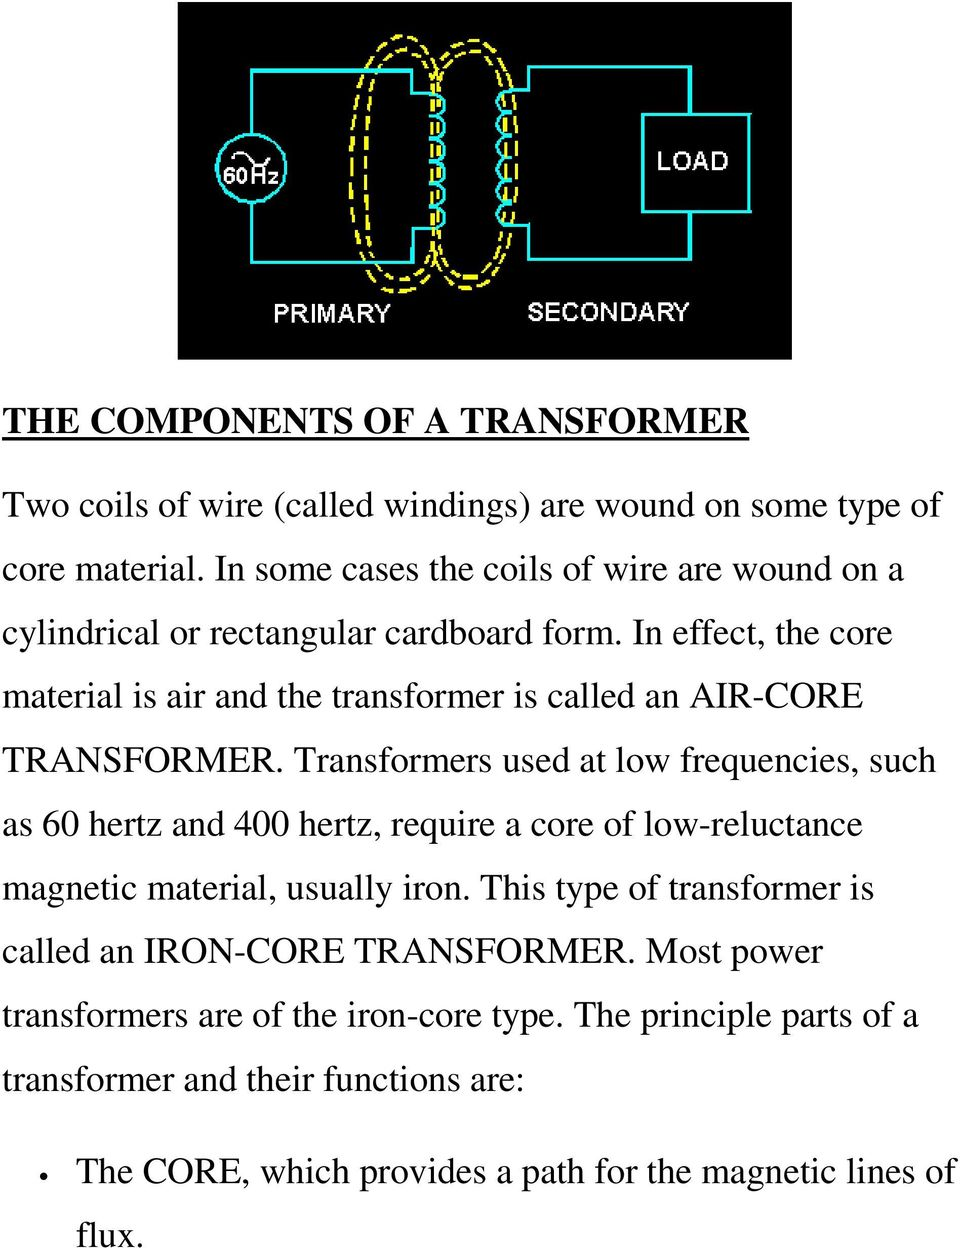 In effect, the core material is air and the transformer is called an AIR-CORE TRANSFORMER.